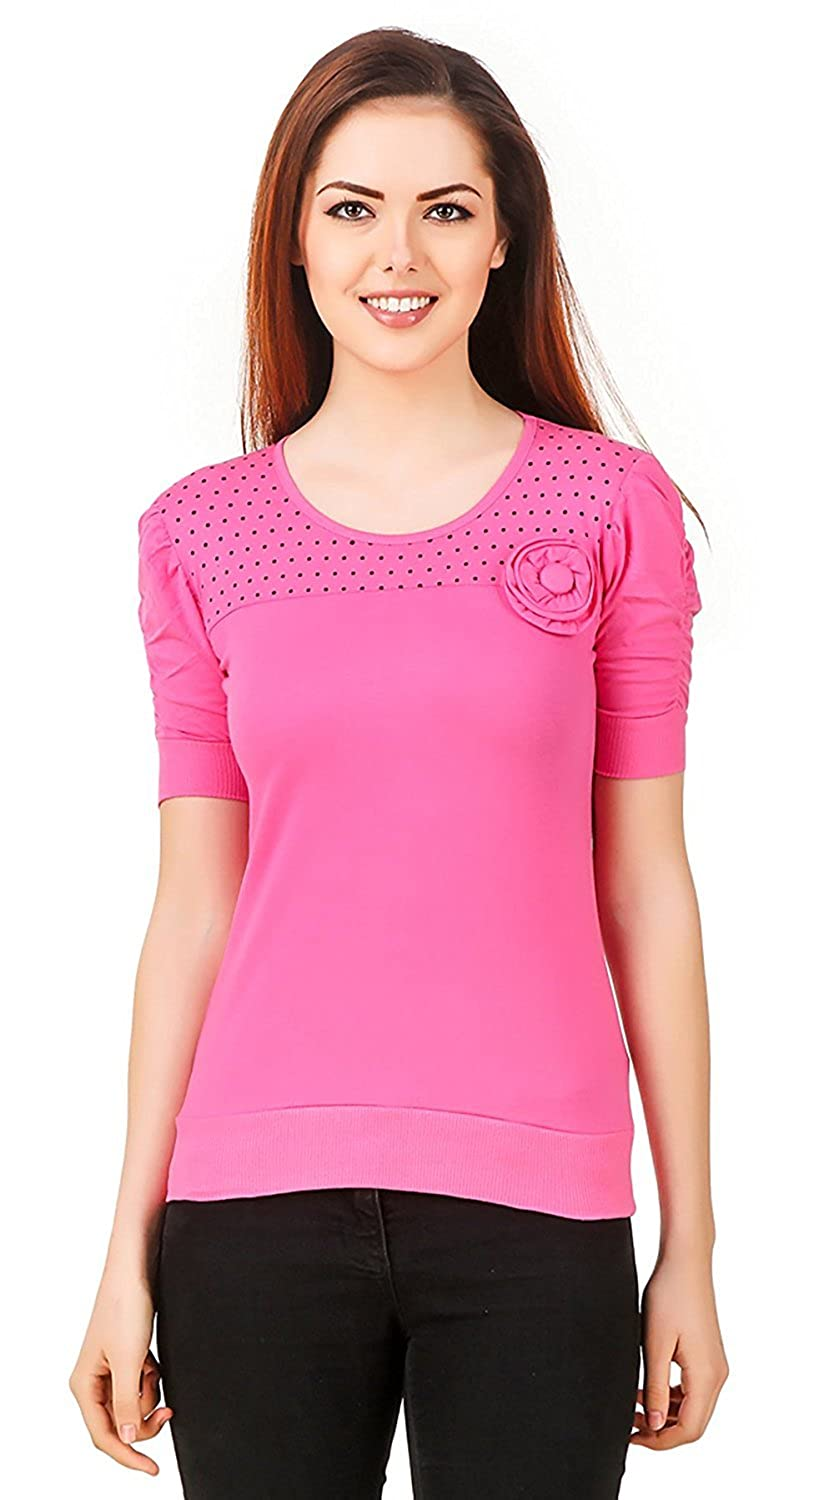 f8f159c57233c Kiba Retail Women s Stylish Fashionable Top For Women Girls For Summer  Western Wear Designer Flower Top (Color- Babypink)  Amazon.in  Clothing    Accessories